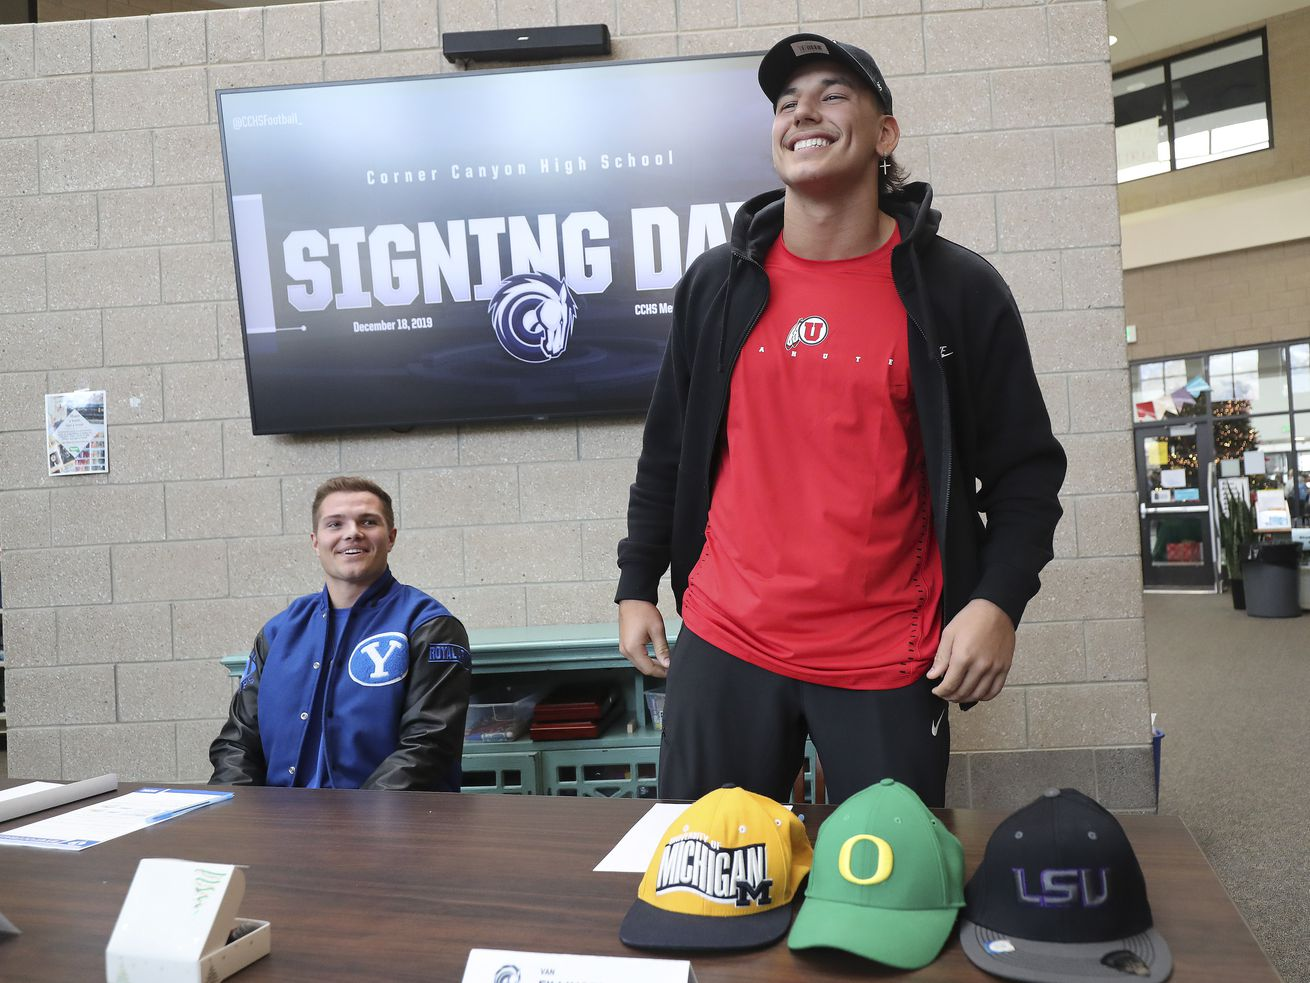 Corner Canyon High School athletes Van Fillinger, right, and Josh Wilson smile as they sign their National Letters of Intent in Draper, Utah, on Wednesday, Dec. 18, 2019. Fillinger signed with Utah and Wilson signed with BYU.